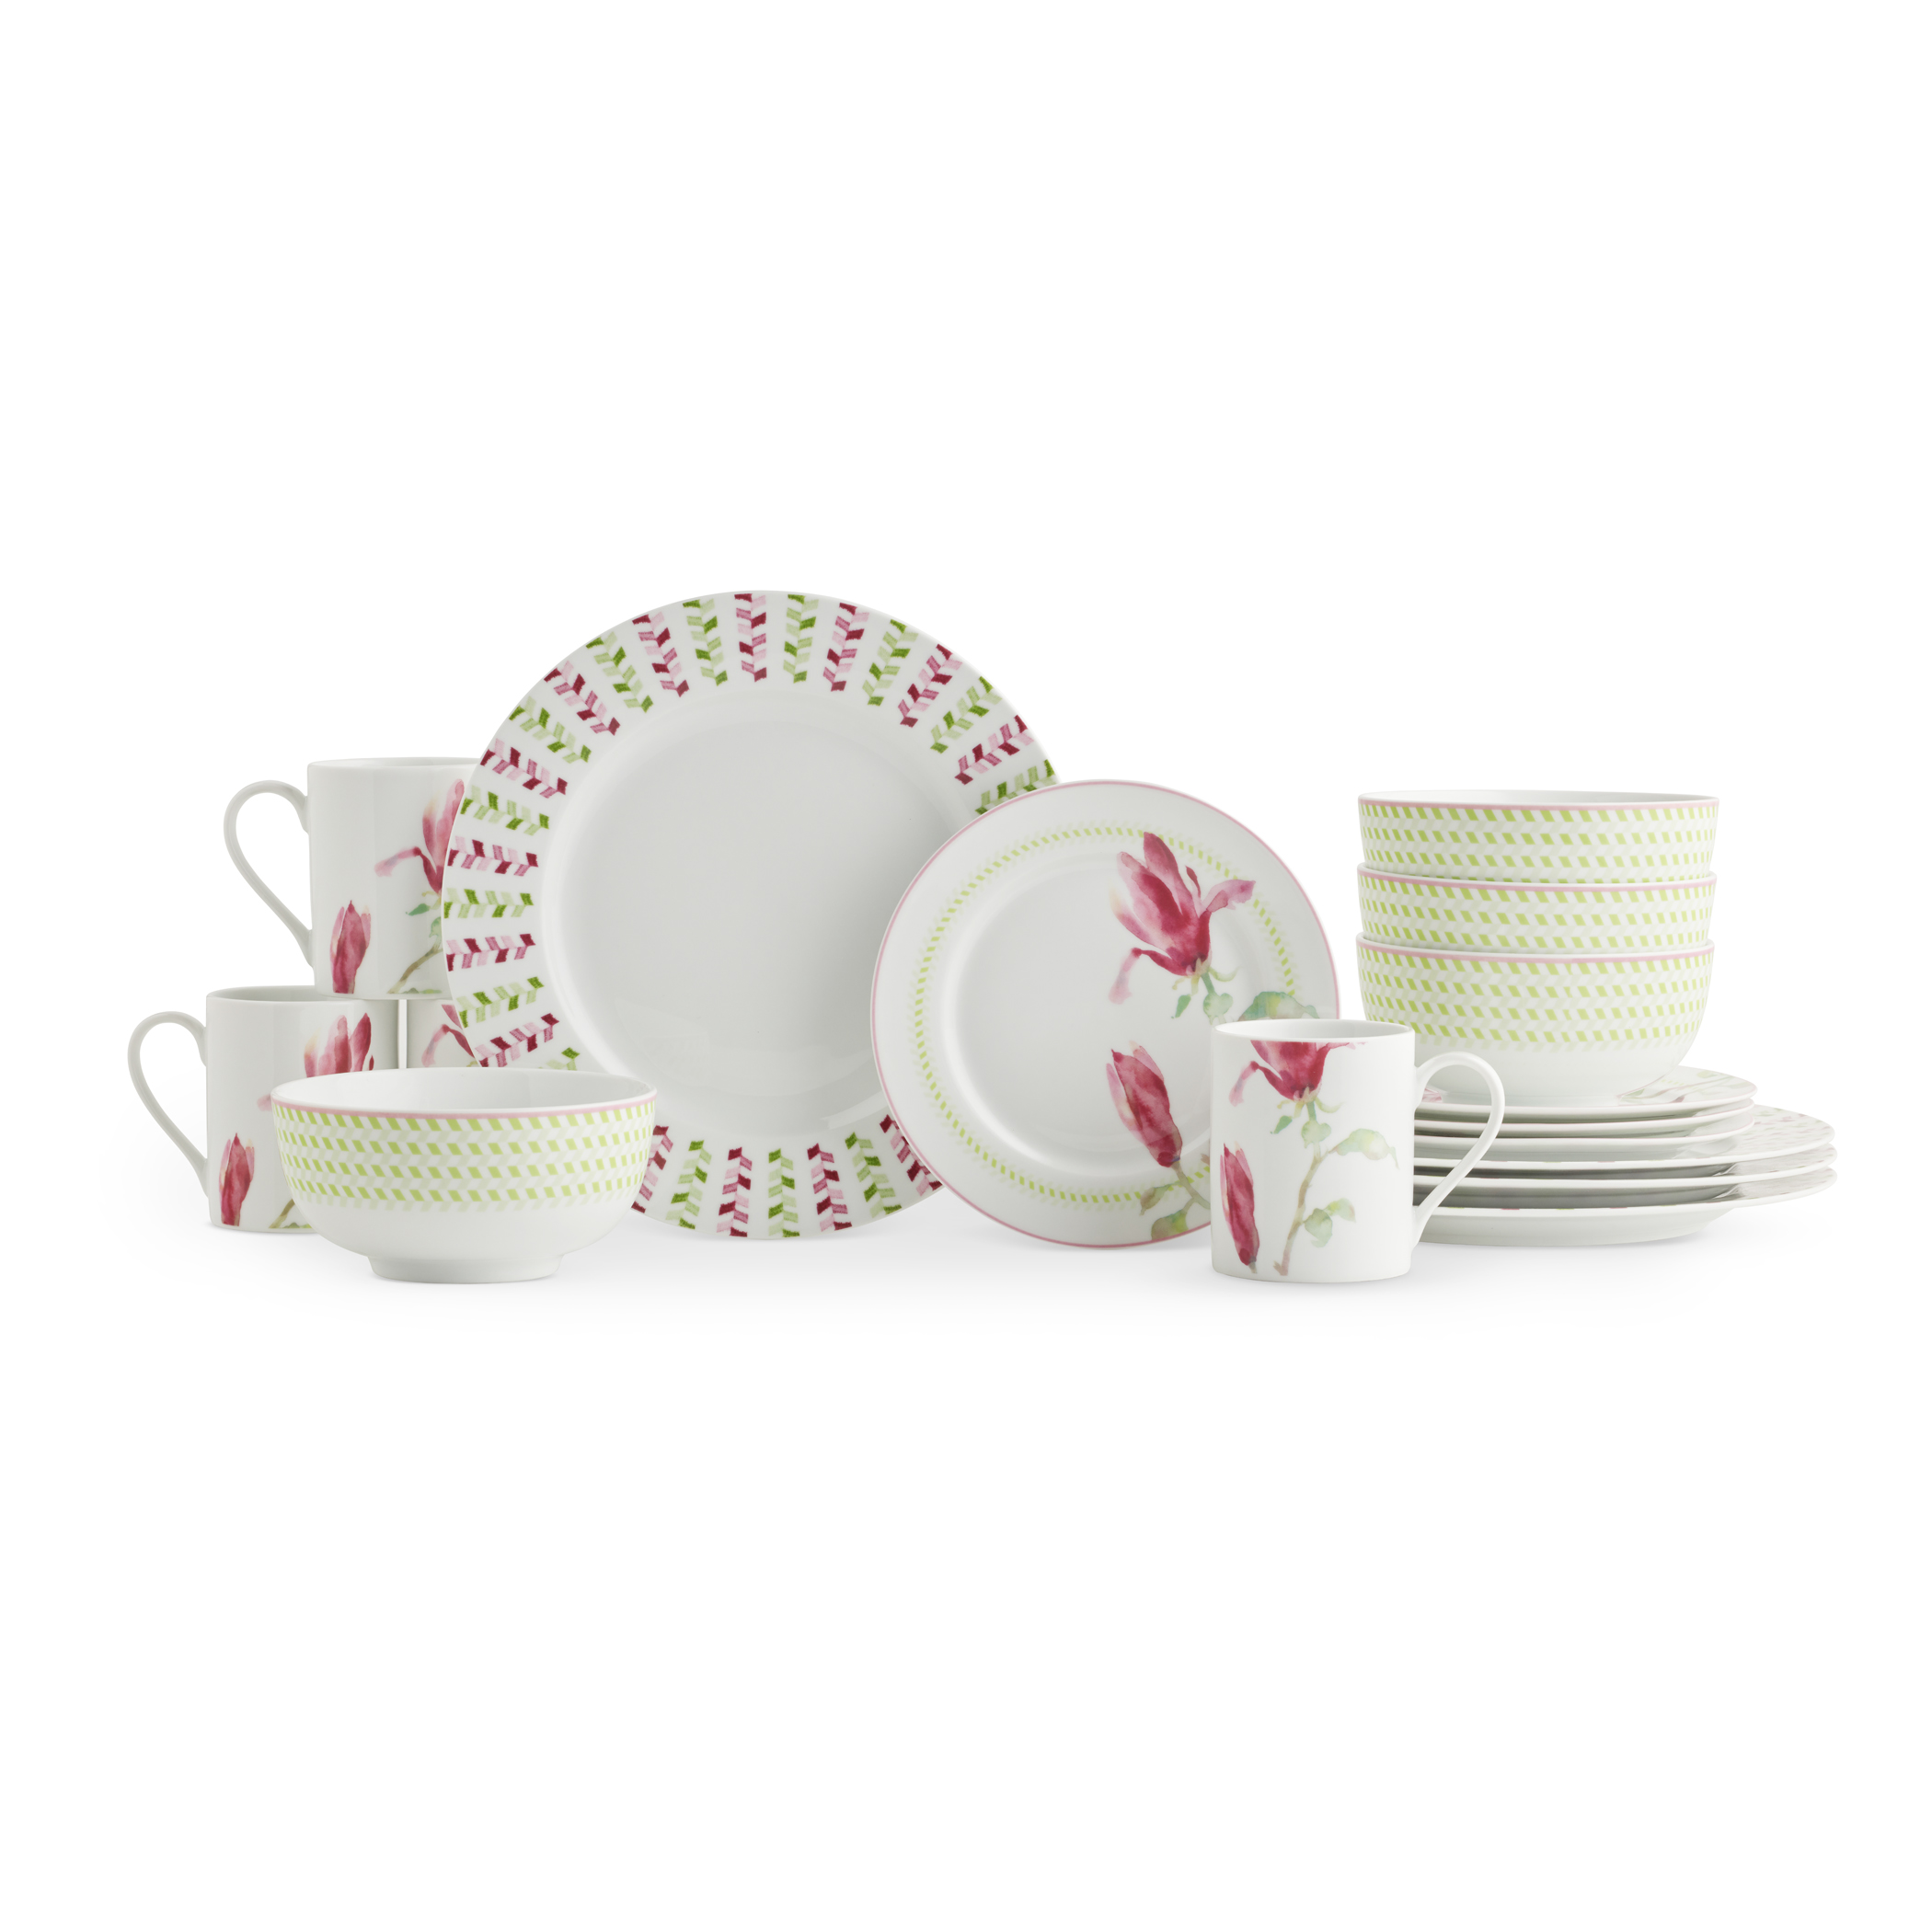 Spode Home Magnolia Haze 16 Piece SET image number 0